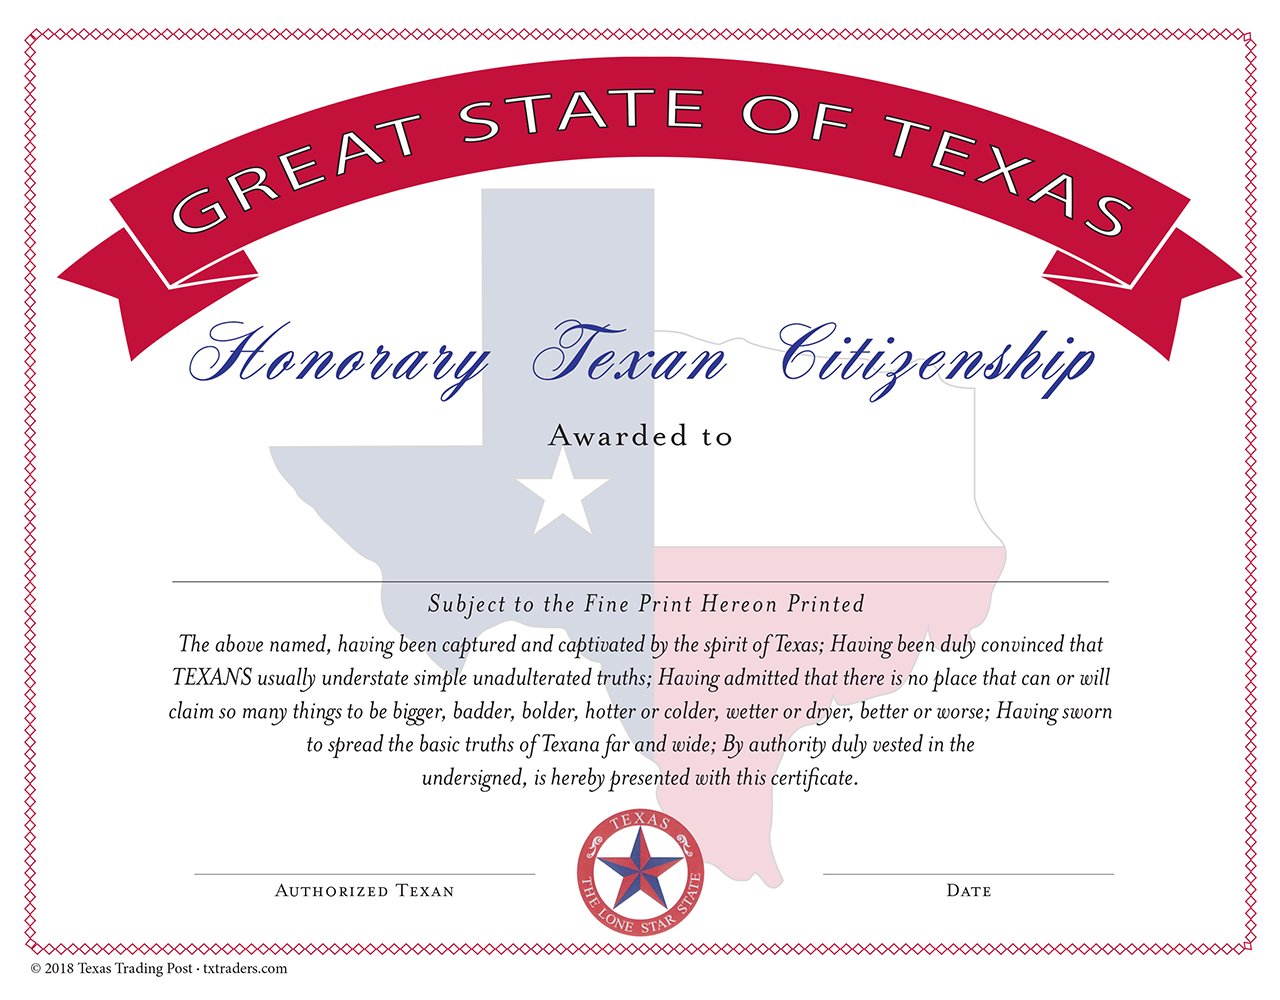 Honorary Citizen of the Great State of Texas